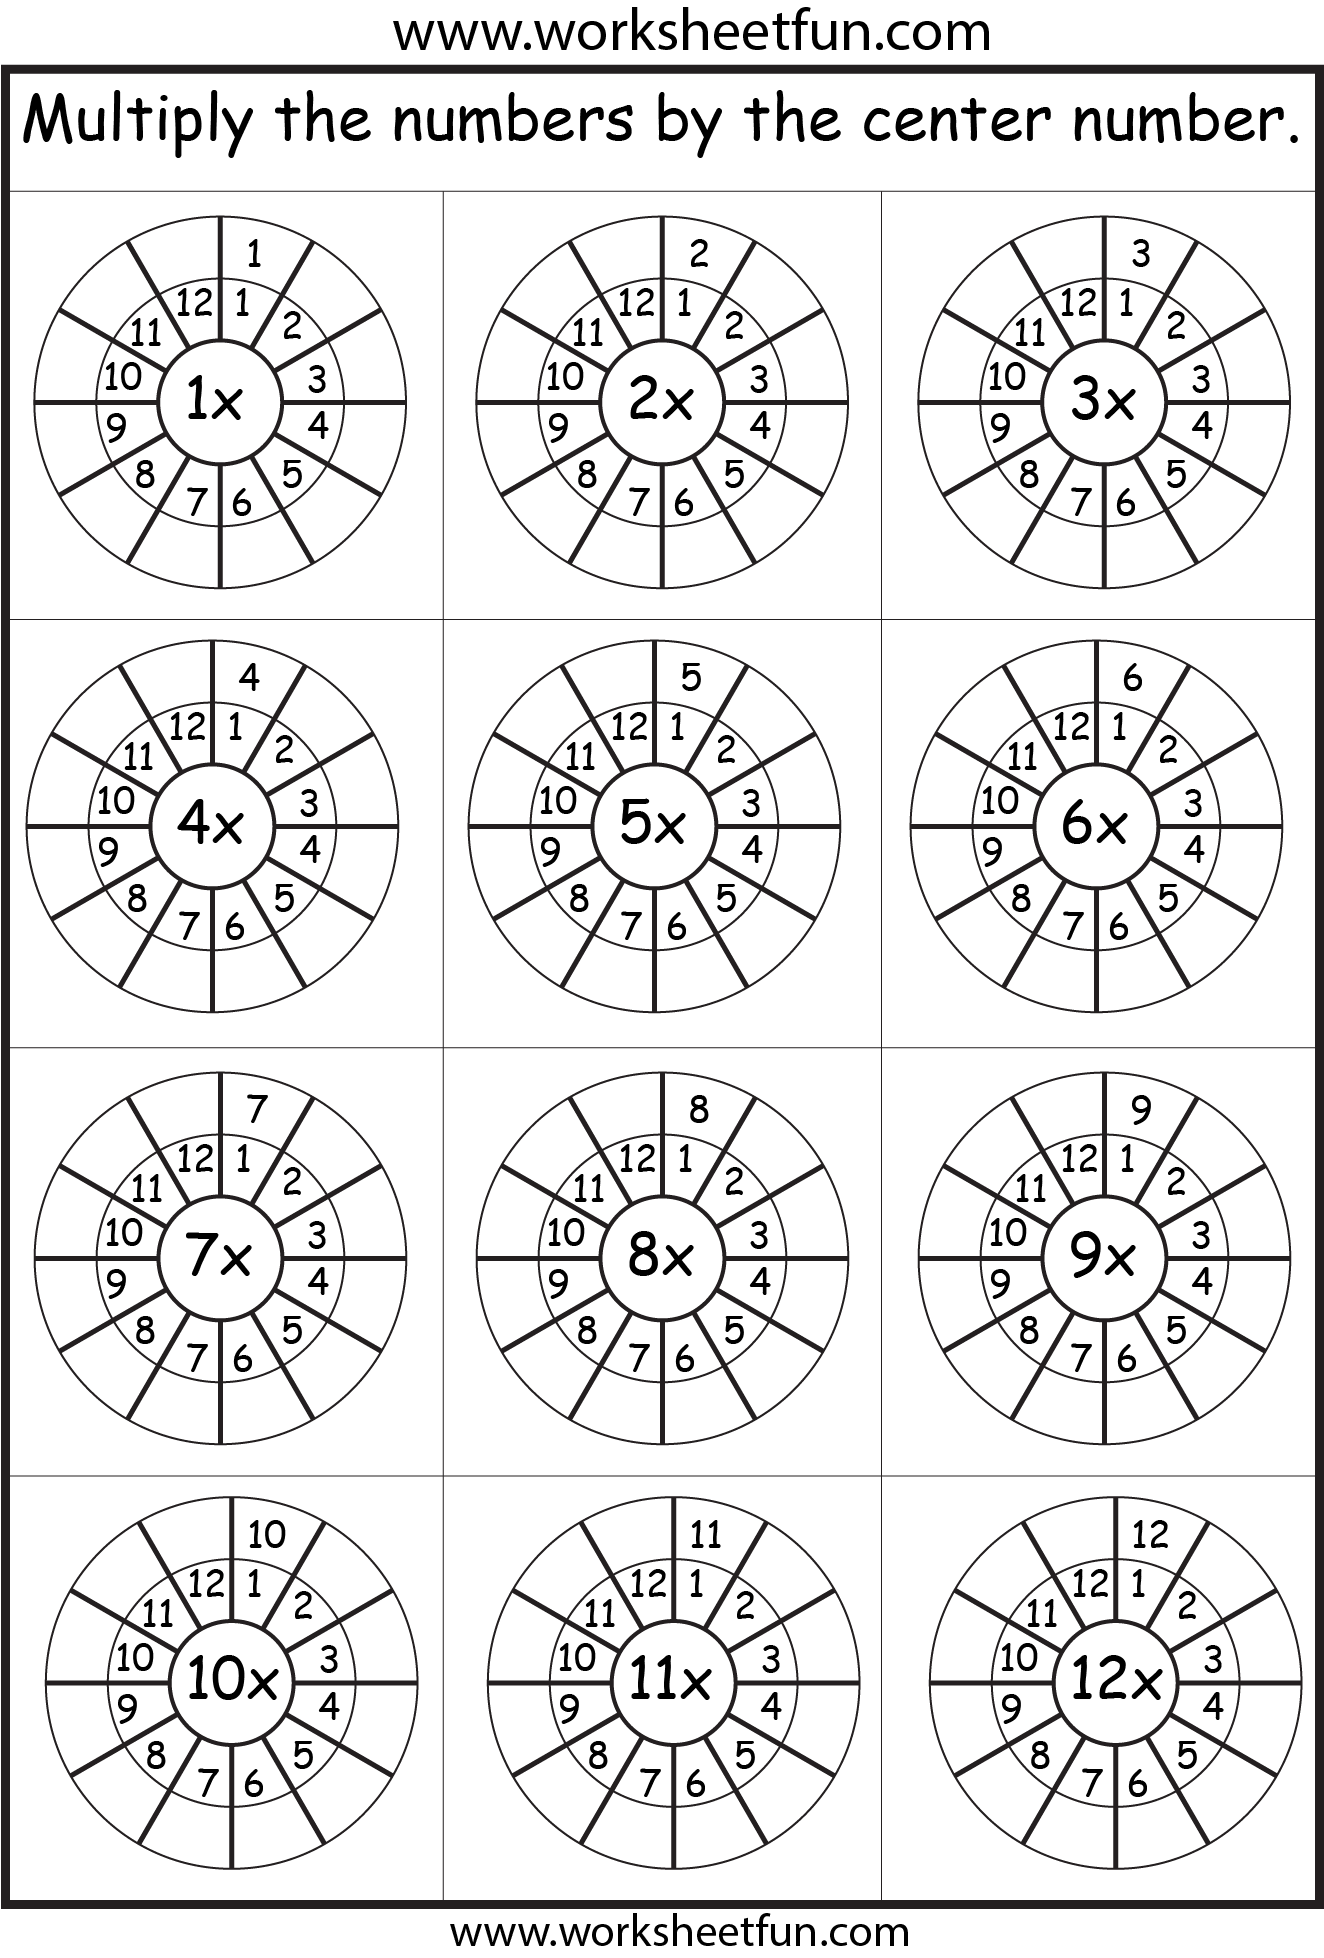 math worksheet : 1000 images about special ed multiplication on pinterest  : Multiplication Practice Worksheets Pdf